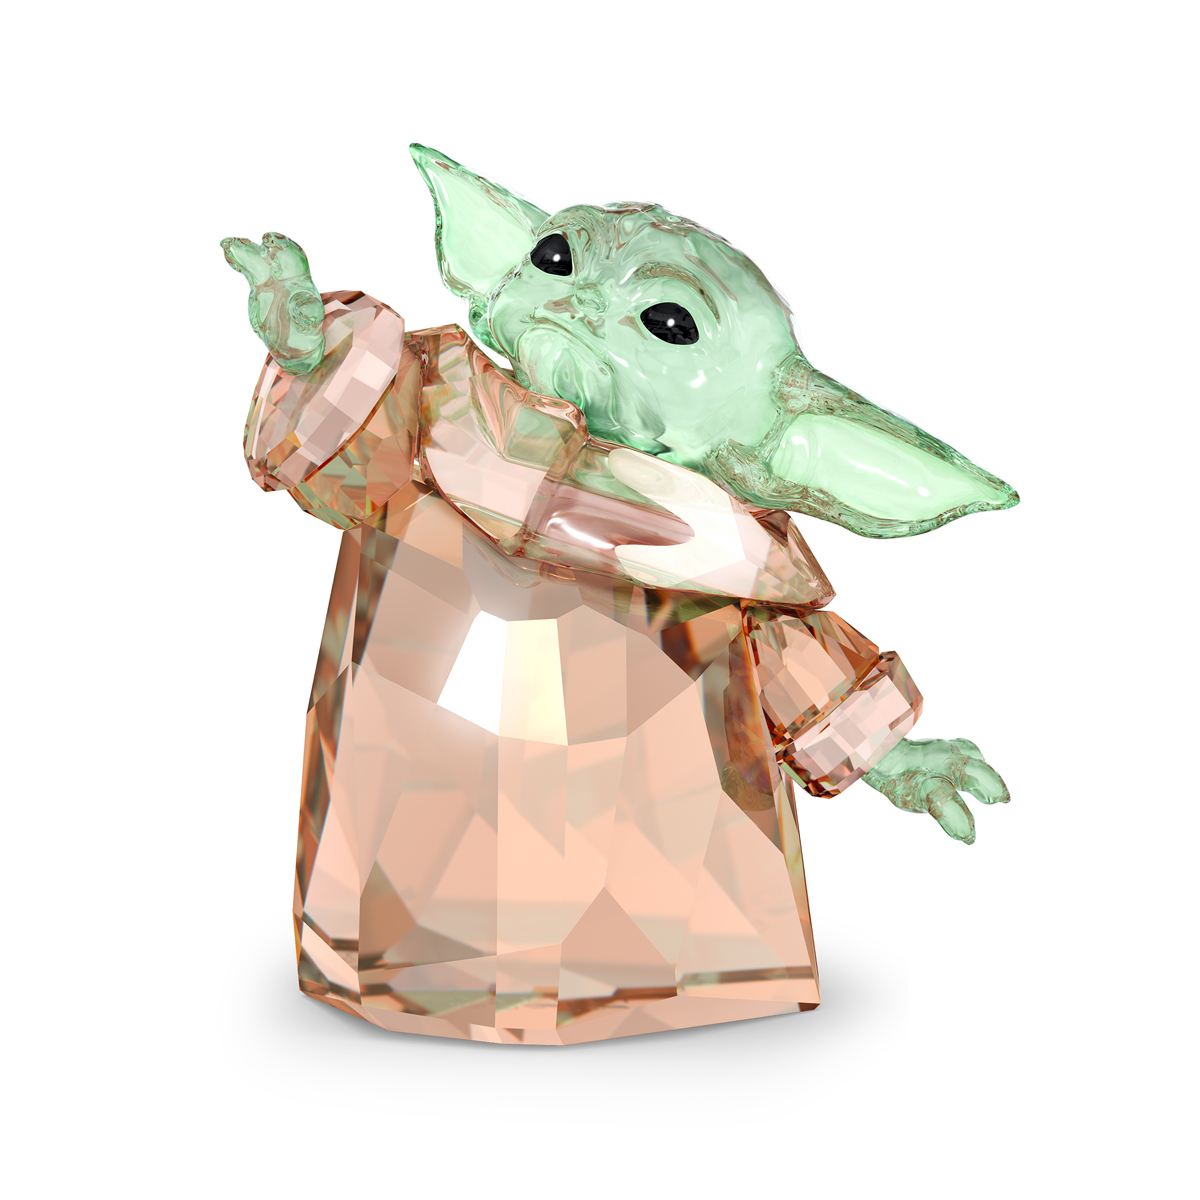 Swarovski Star Wars, Baby Yoda - Grogu, Mandalorian Child